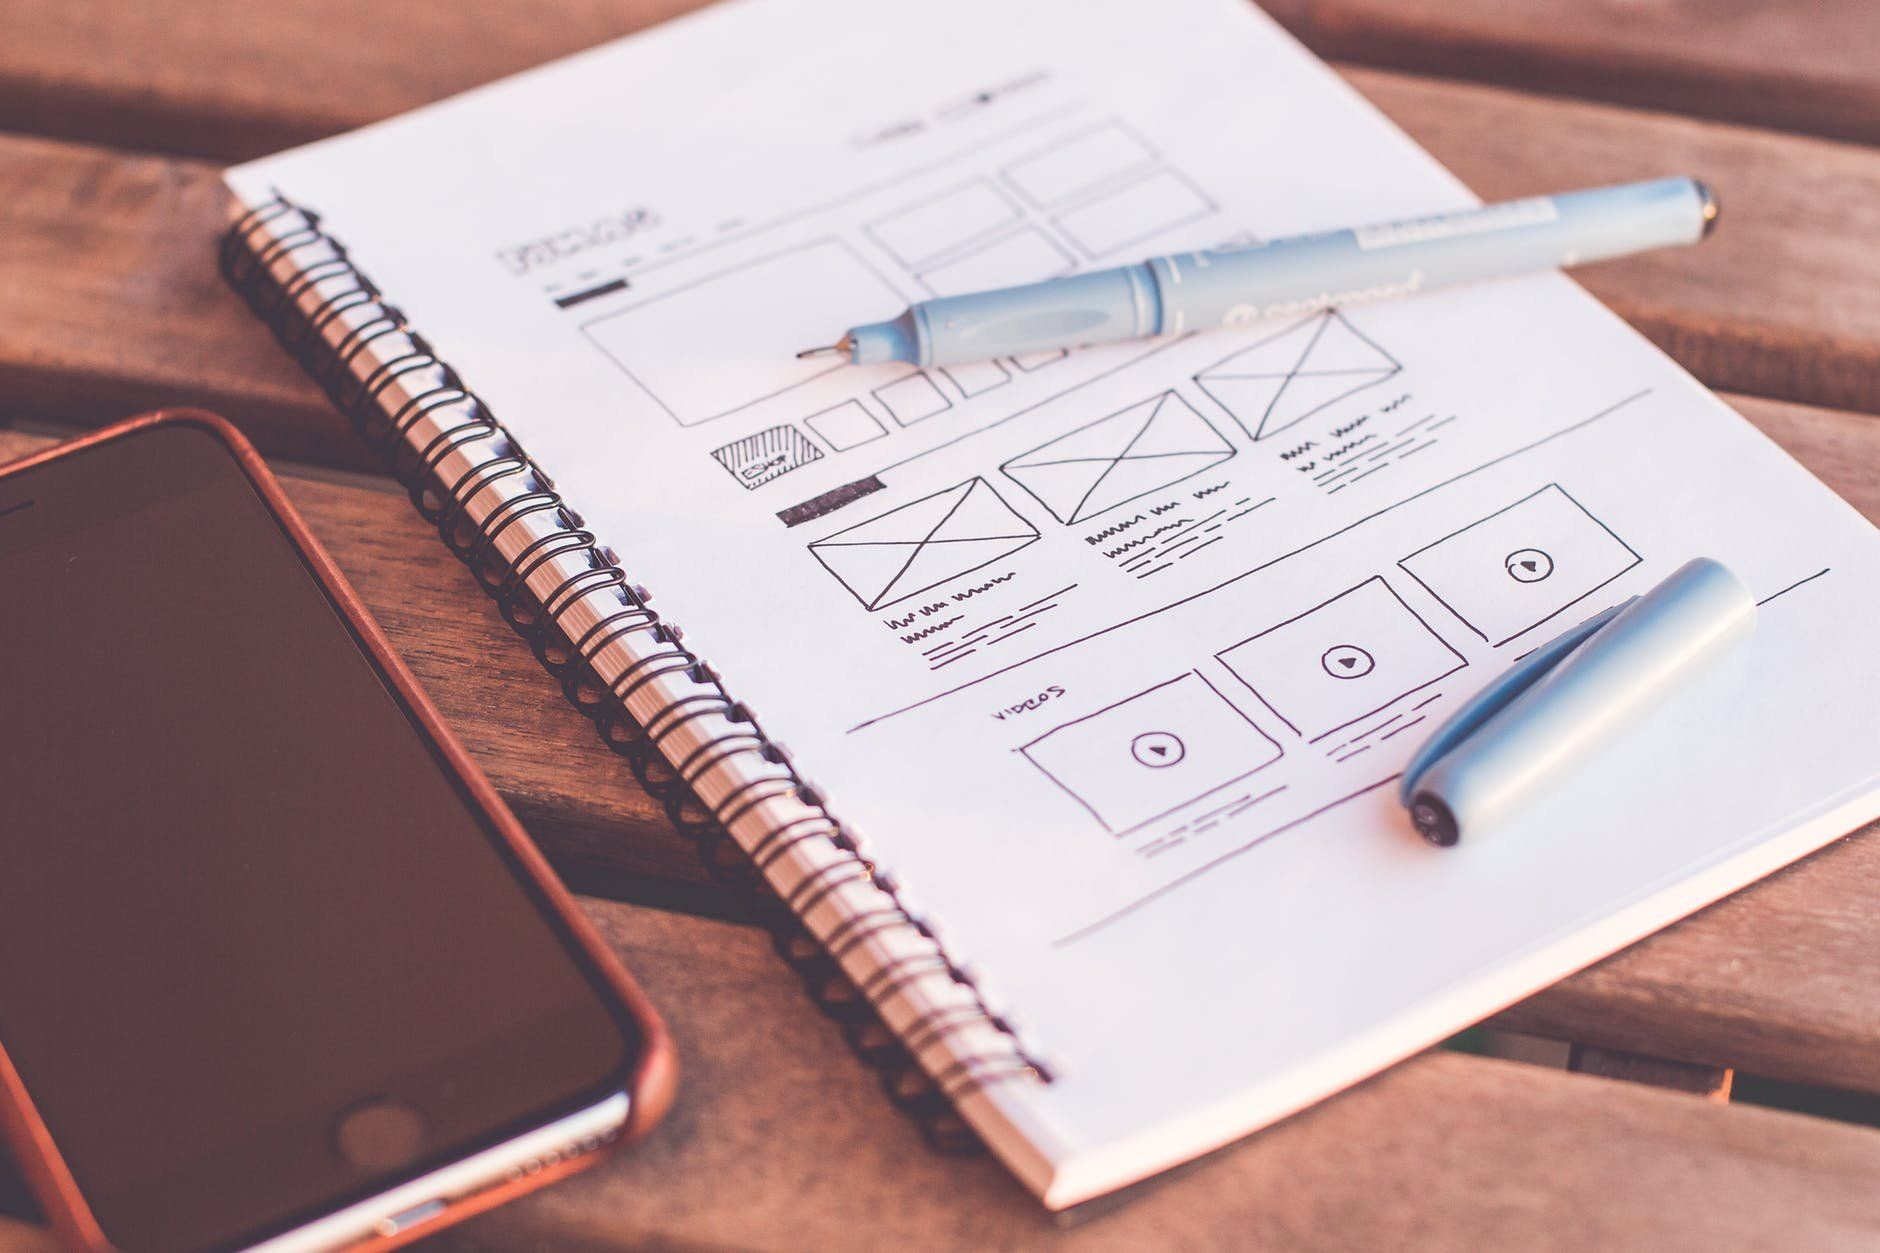 /ux-design-patterns-hacks-for-better-transparency-and-feedback-in-fintech-apps-ajw339n feature image